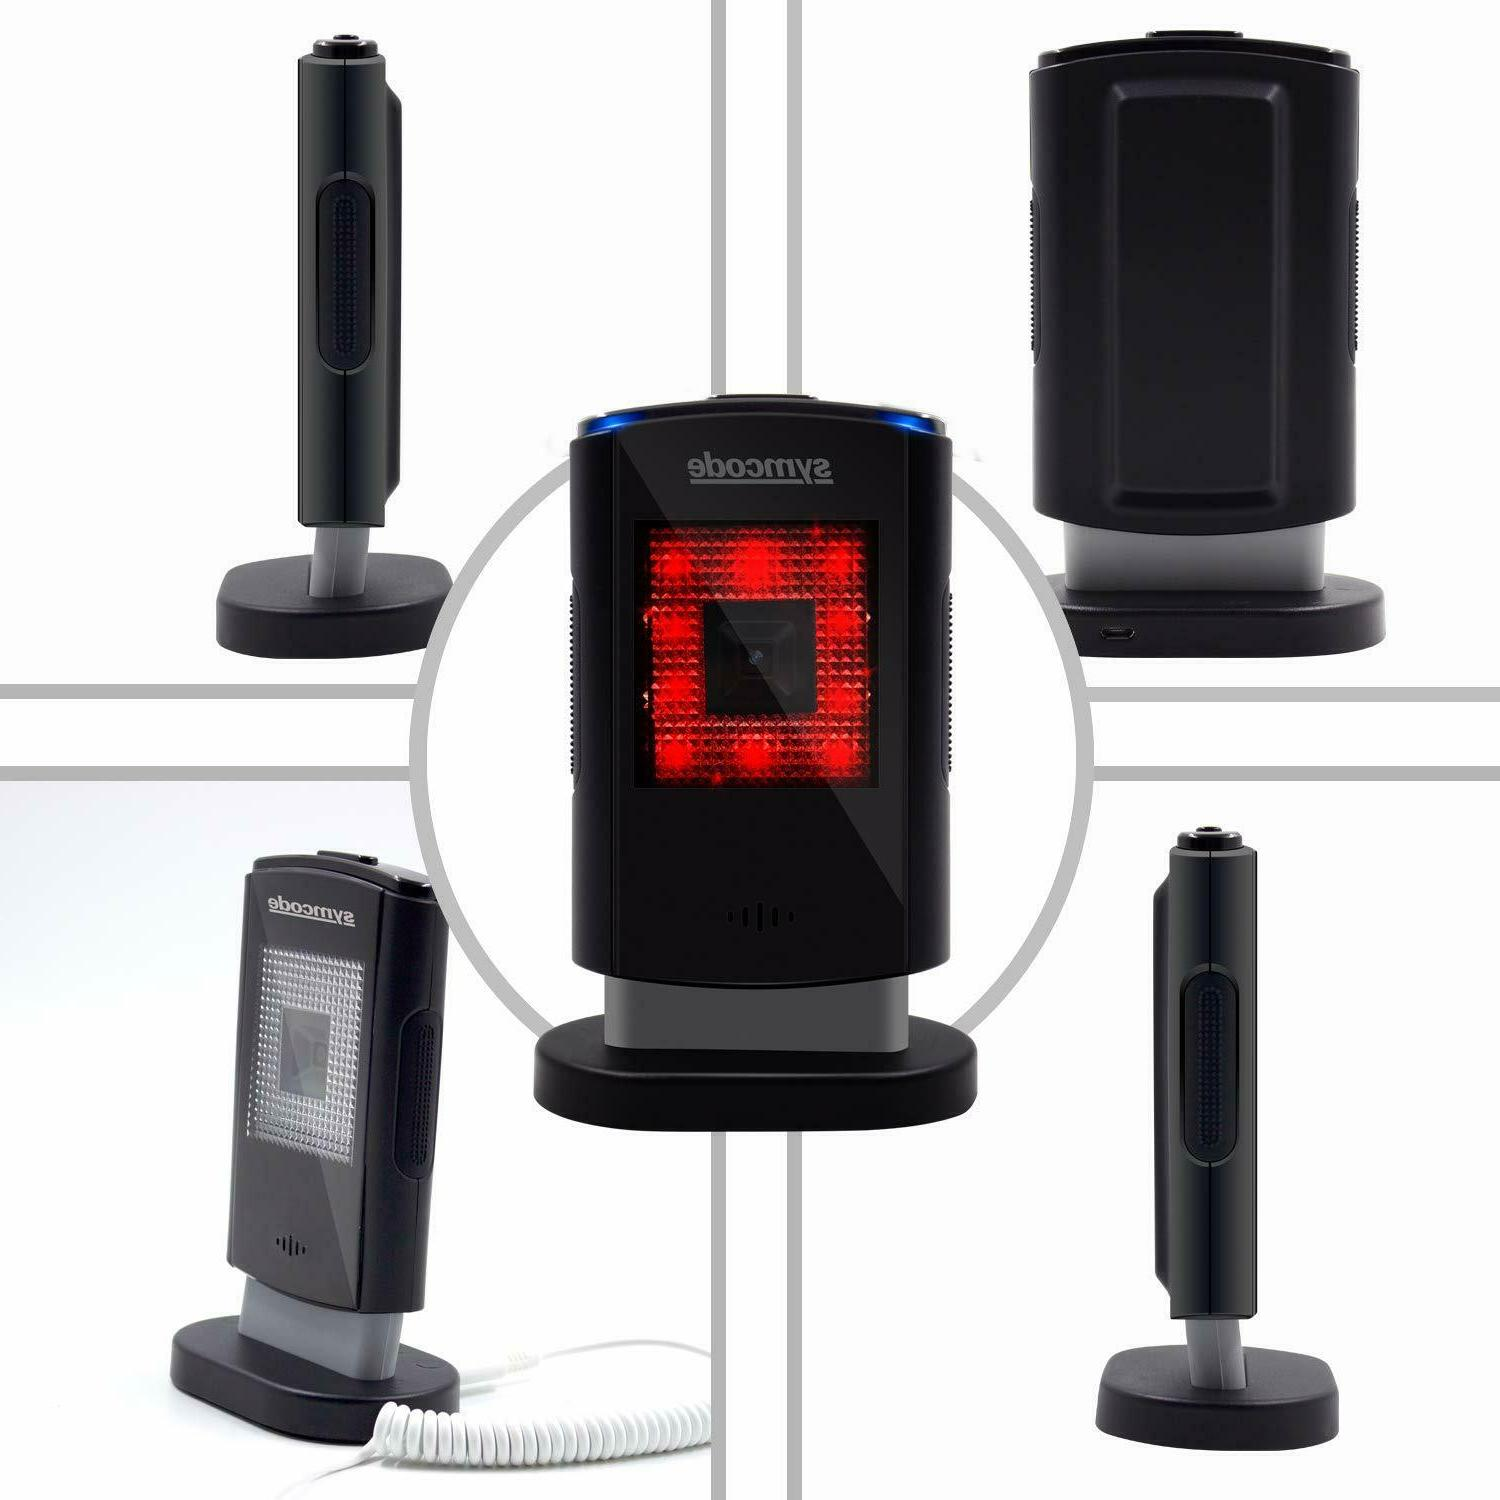 2DQR Barcode Symcode Omnidirectional Hands-Free Reader